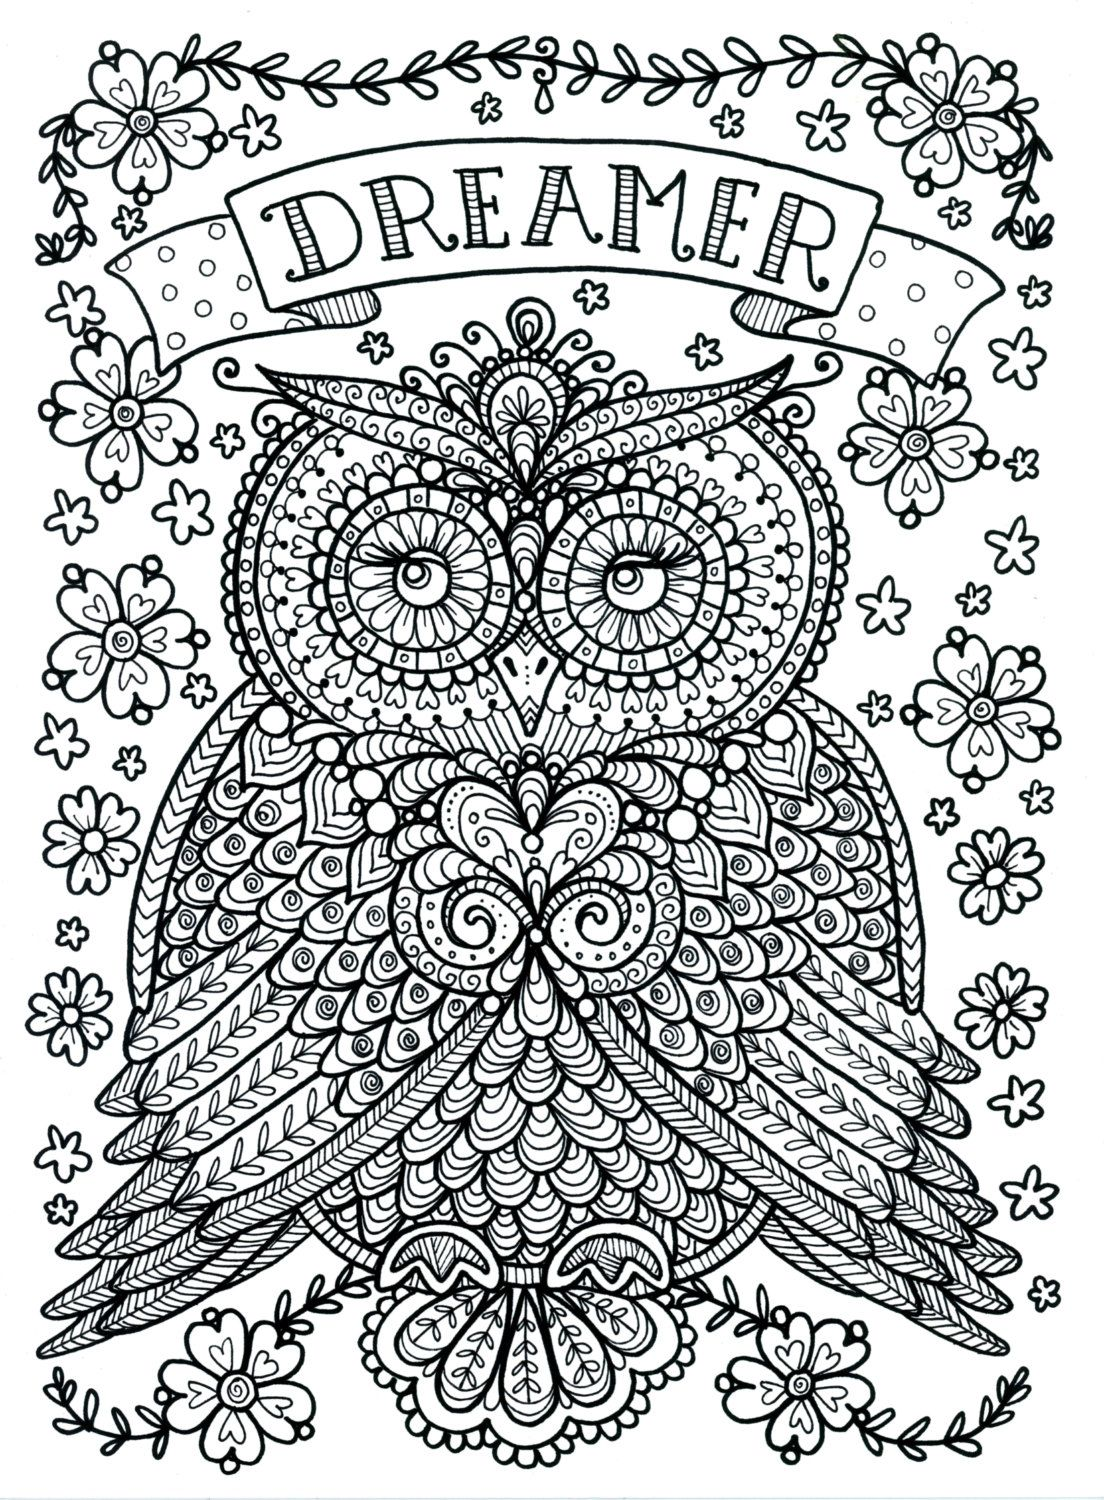 poster to color large size 11x14 owl dreamer door chubbymermaid - Posters To Color